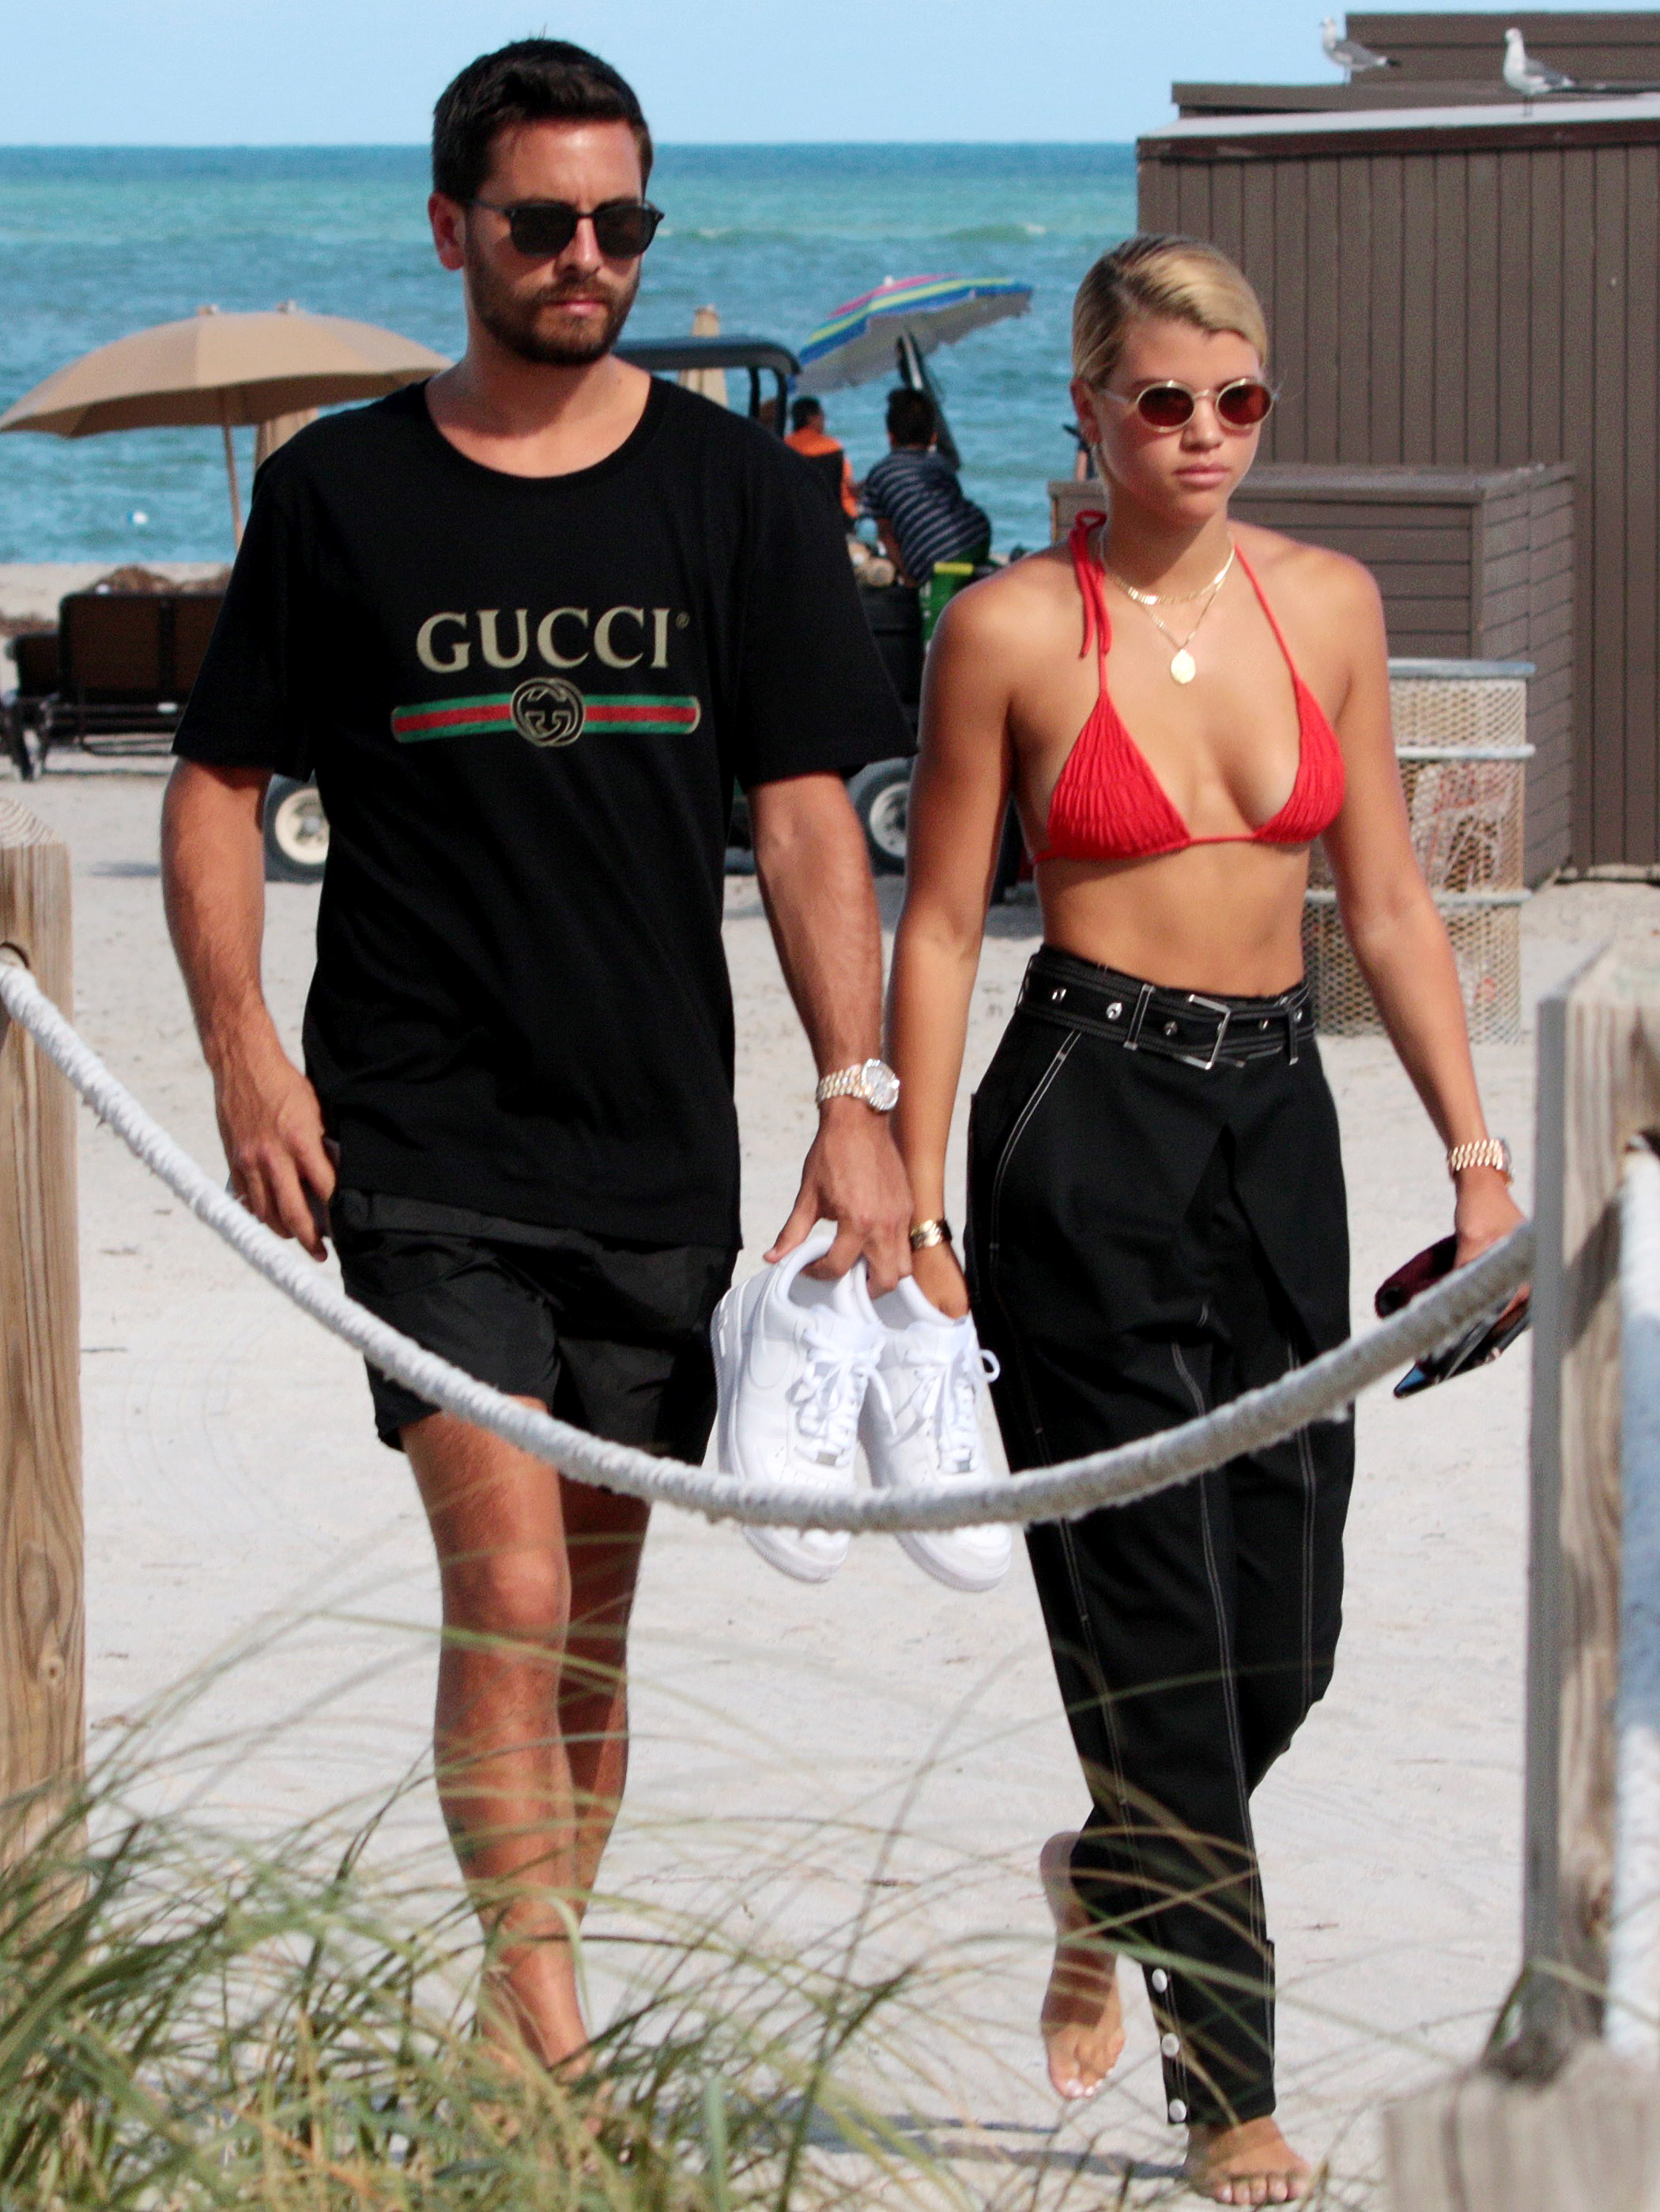 NO JUST JARED USAGE<BR/> Scott Disick new girlfriend Sofia Richie in a skimpy red bikini top taking a walk by the beach in Miami, Florida.  <P> Pictured: Scott Disick, Sofia Richie <B>Ref: SPL1586963  230917  </B><BR/> Picture by: Splash News<BR/> </P><P> <B>Splash News and Pictures</B><BR/> Los Angeles:310-821-2666<BR/> New York:212-619-2666<BR/> London:870-934-2666<BR/> <span id=